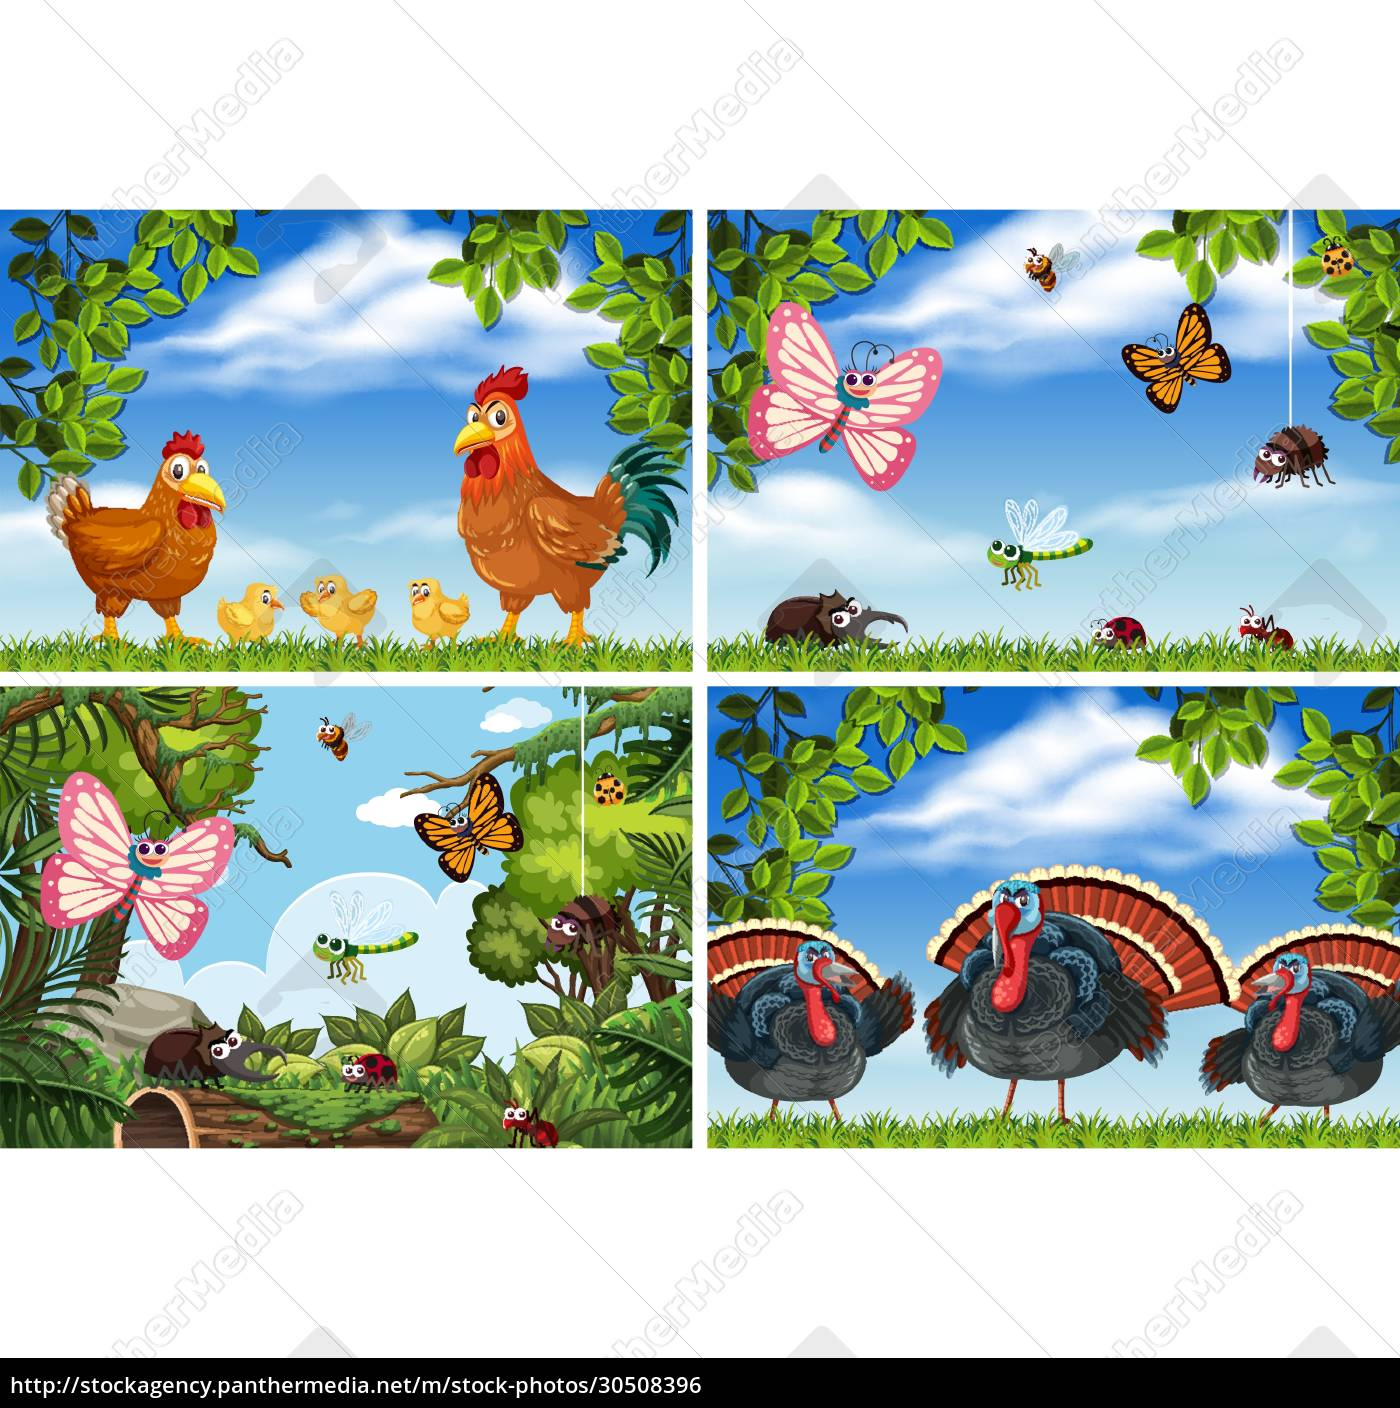 set, of, various, animals, in, nature - 30508396